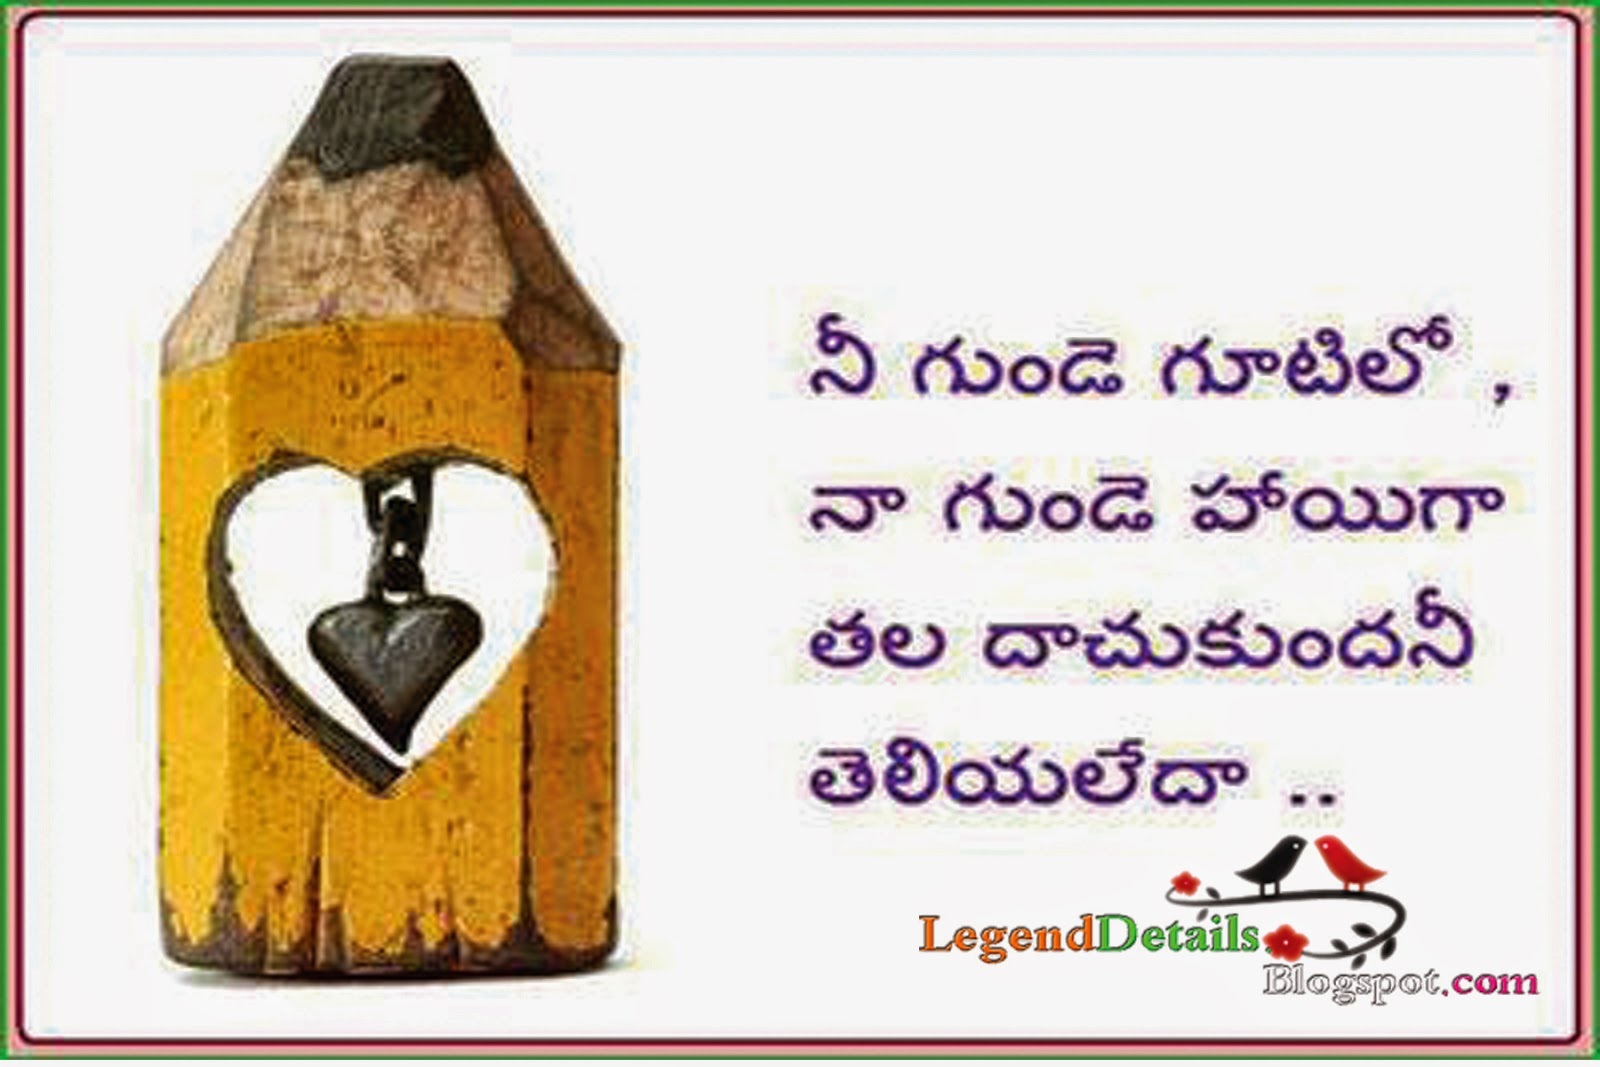 Telugu Love Quotes Amazing Famous New Telugu Love Quotes  Hd Wallpapers  Legendary Quotes